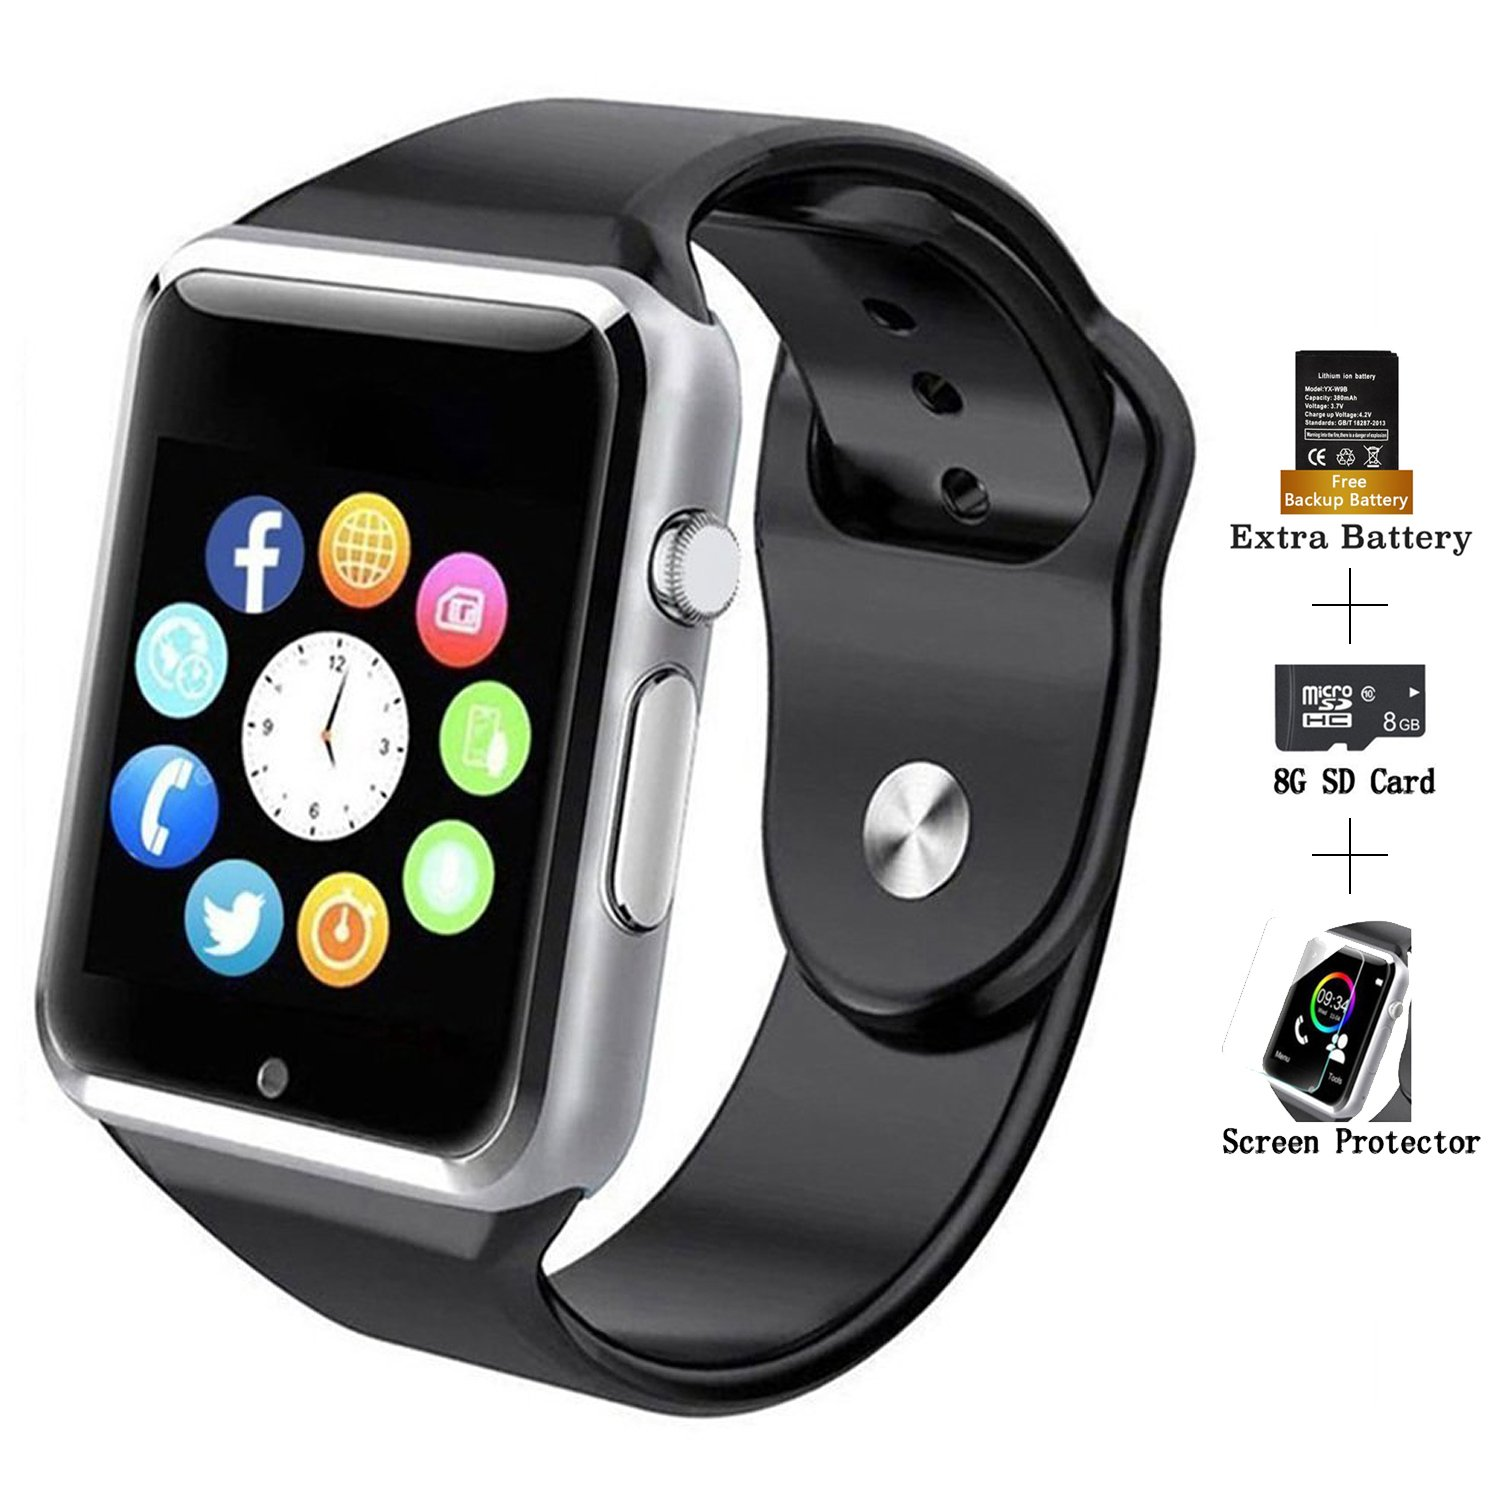 COSROLE Smart Sports Watch, Bluetooth V4.0 Smart Watch Sport Wireless Monitor Wristband with Sleep Monitoring Pedometer Call Message Reminder Anti Lost for Android Phones - Black